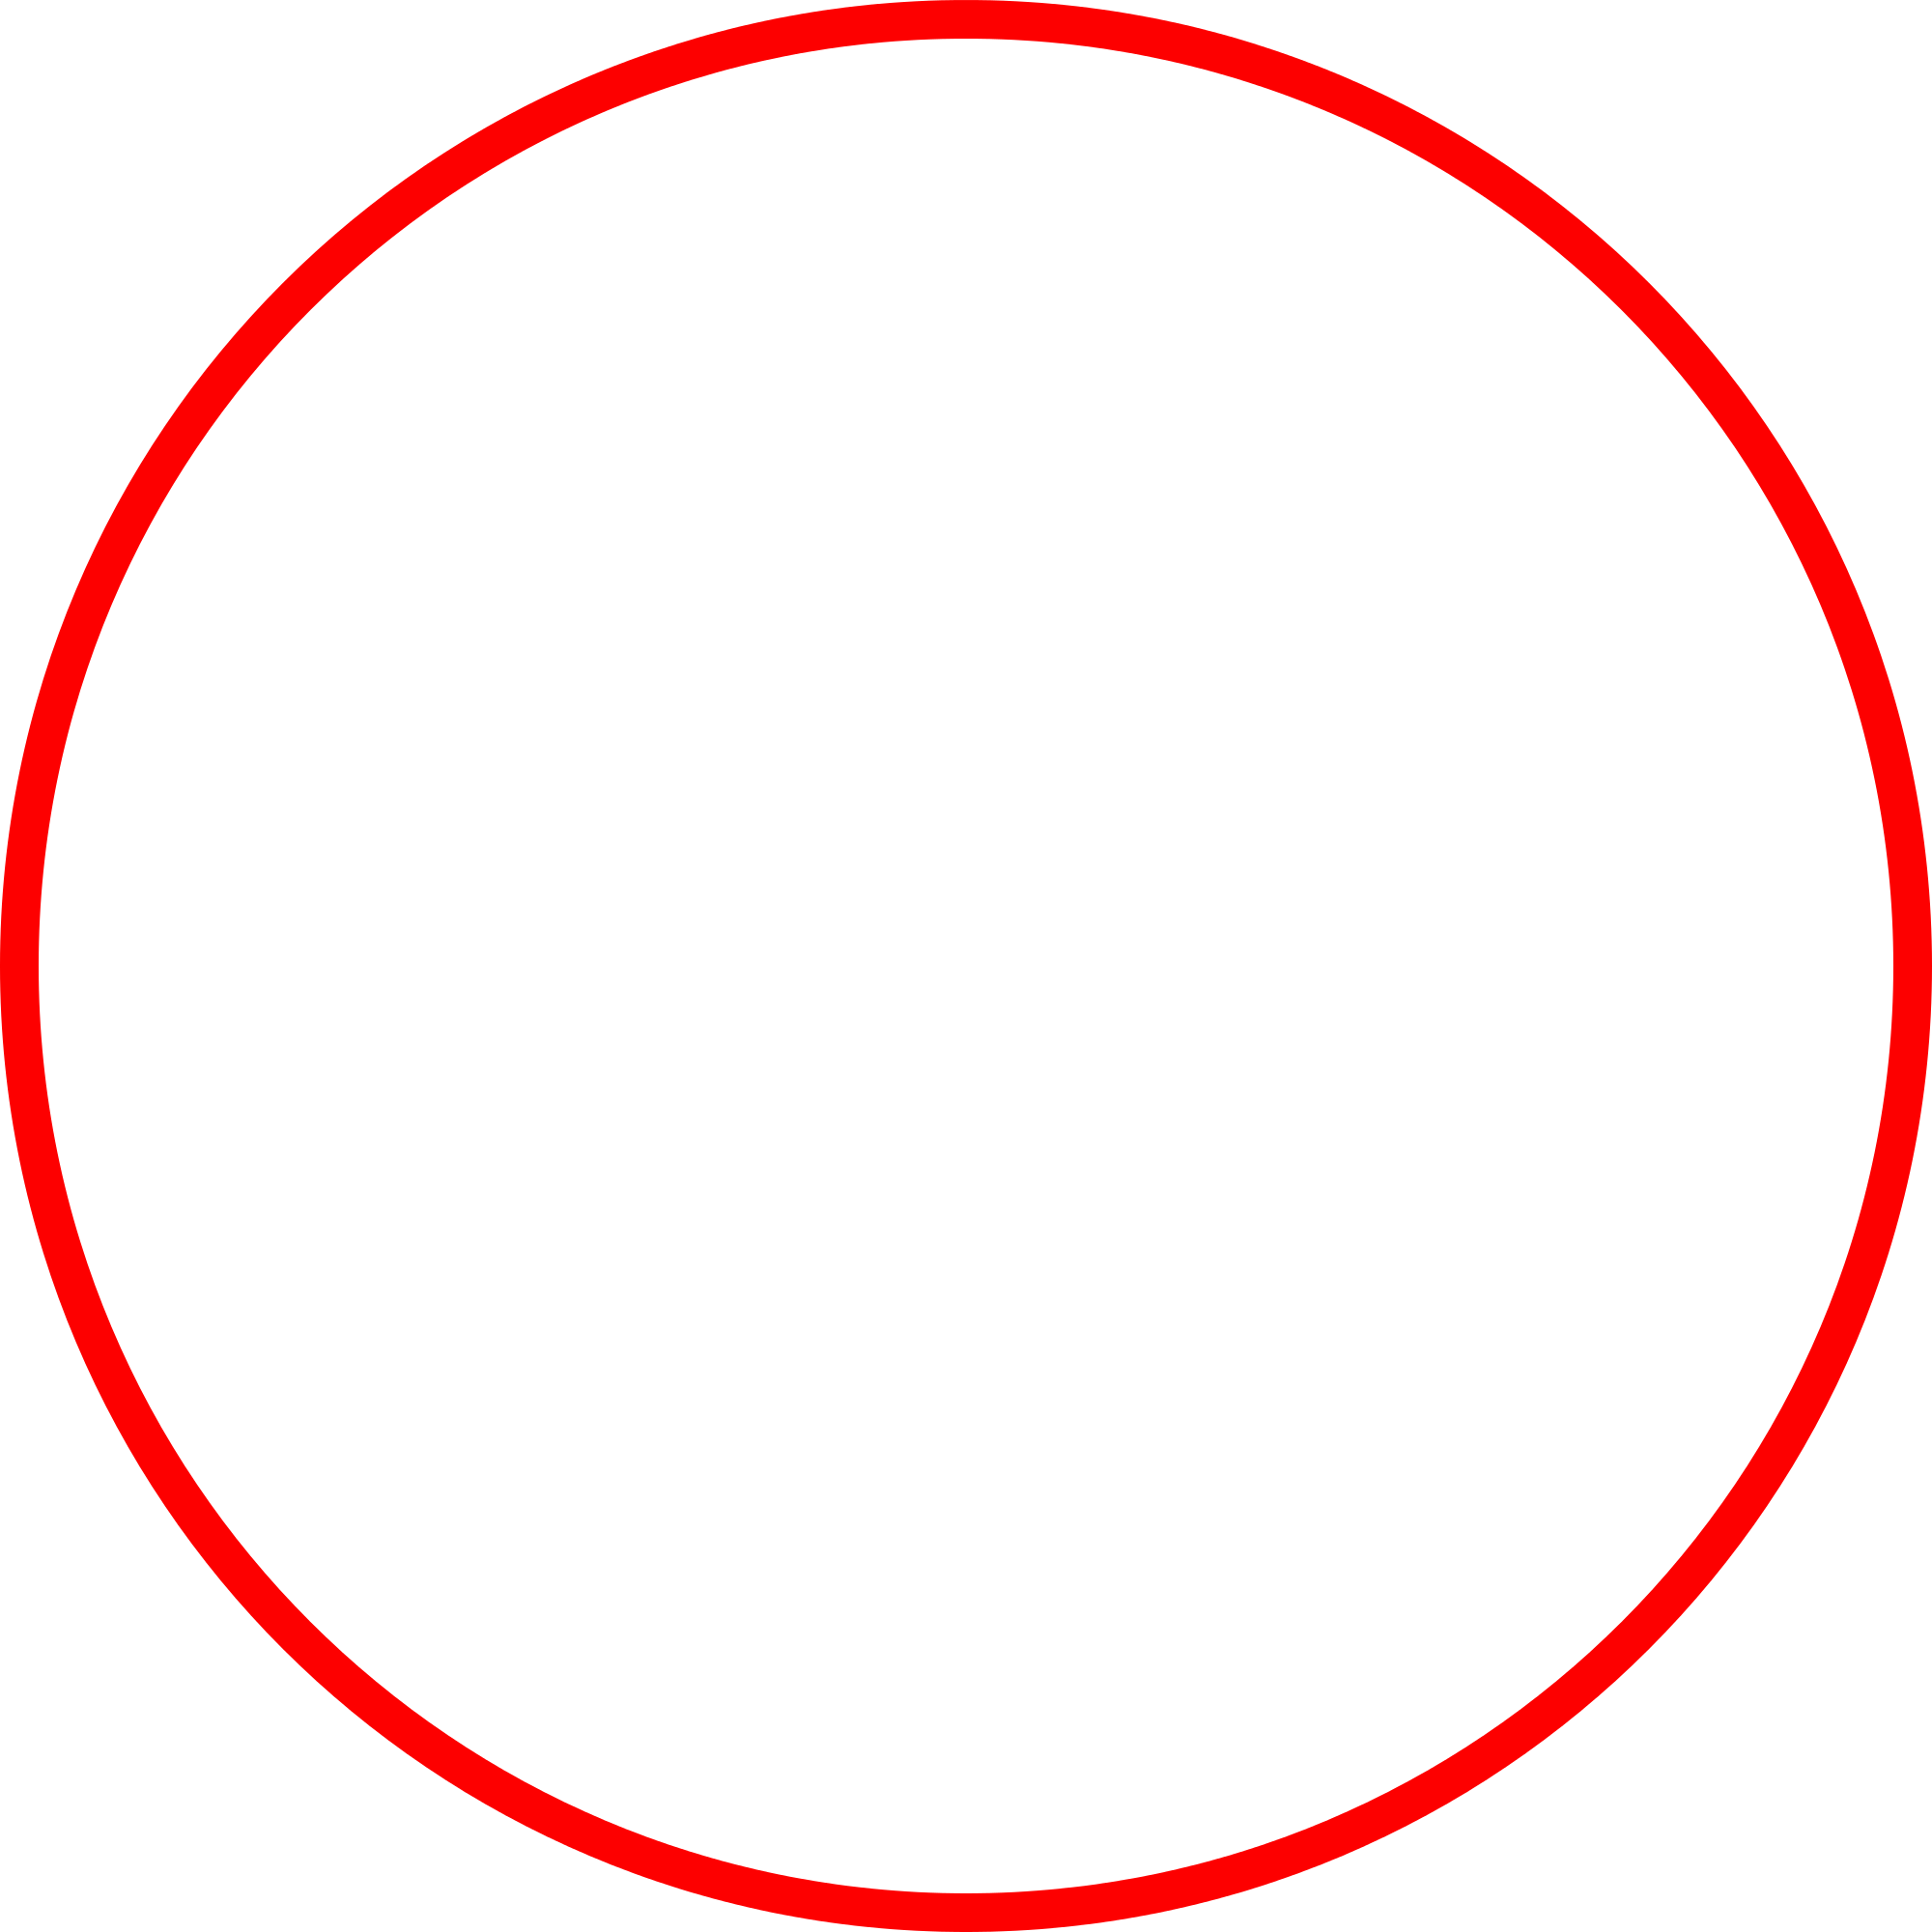 Red Circle Image | Free download on ClipArtMag